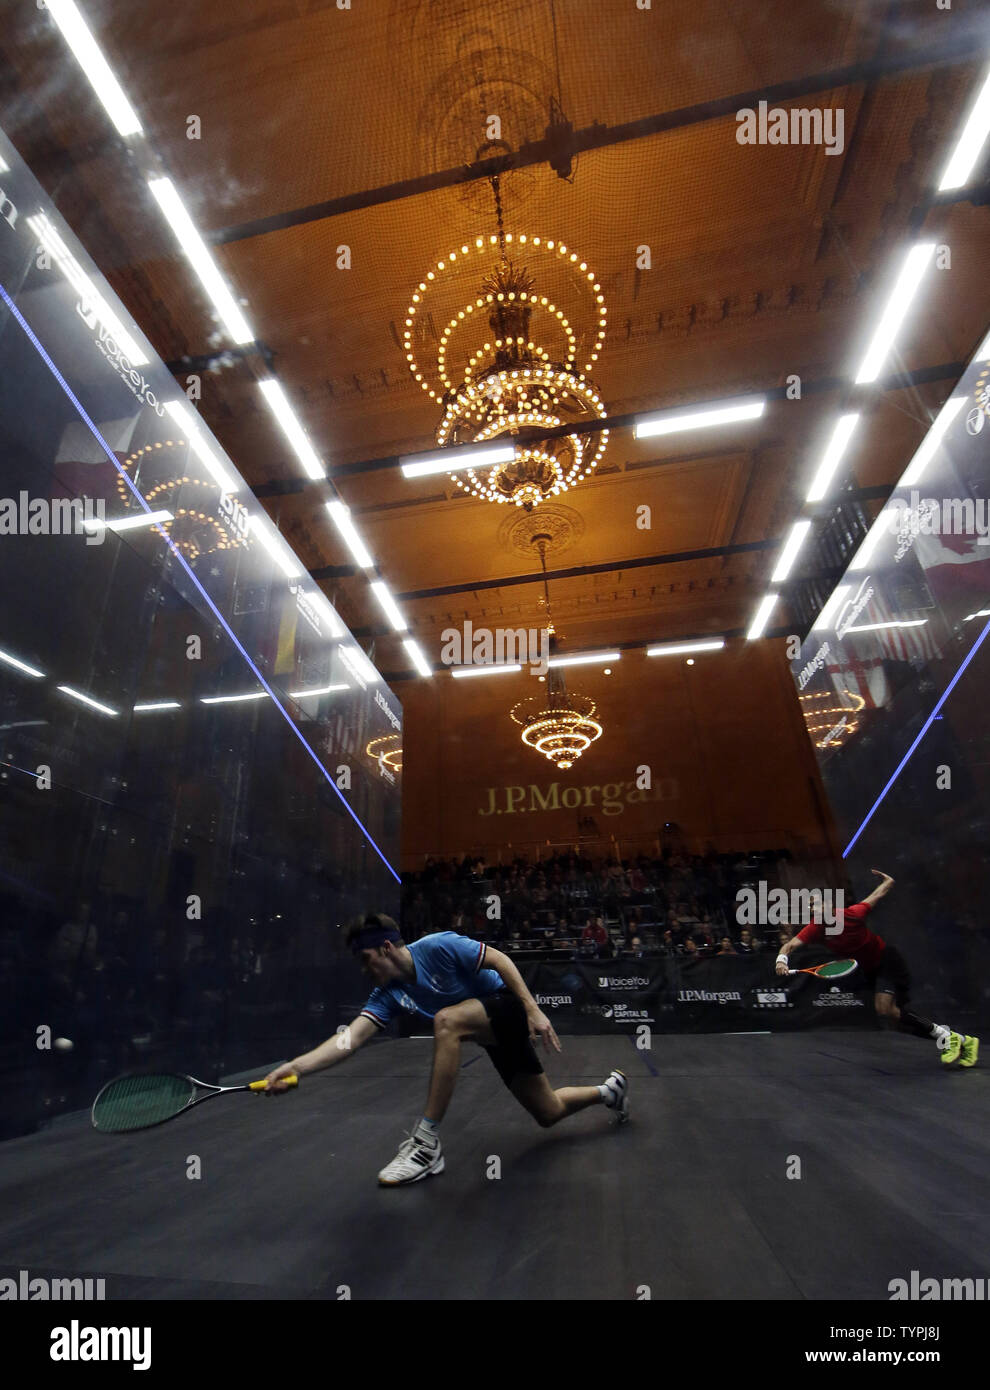 Chris Simpson of England hits a forehand in his match against Cesar Salazar of Mexico at JPMorgan Chase & Co.'s 18th annual  'Tournament of Champions' Professional Squash Tournament in Grand Central Terminal in New York City on January 16, 2015. The annual tournament is scheduled to continue through January 23rd.       Photo by John Angelillo/UPI - Stock Image